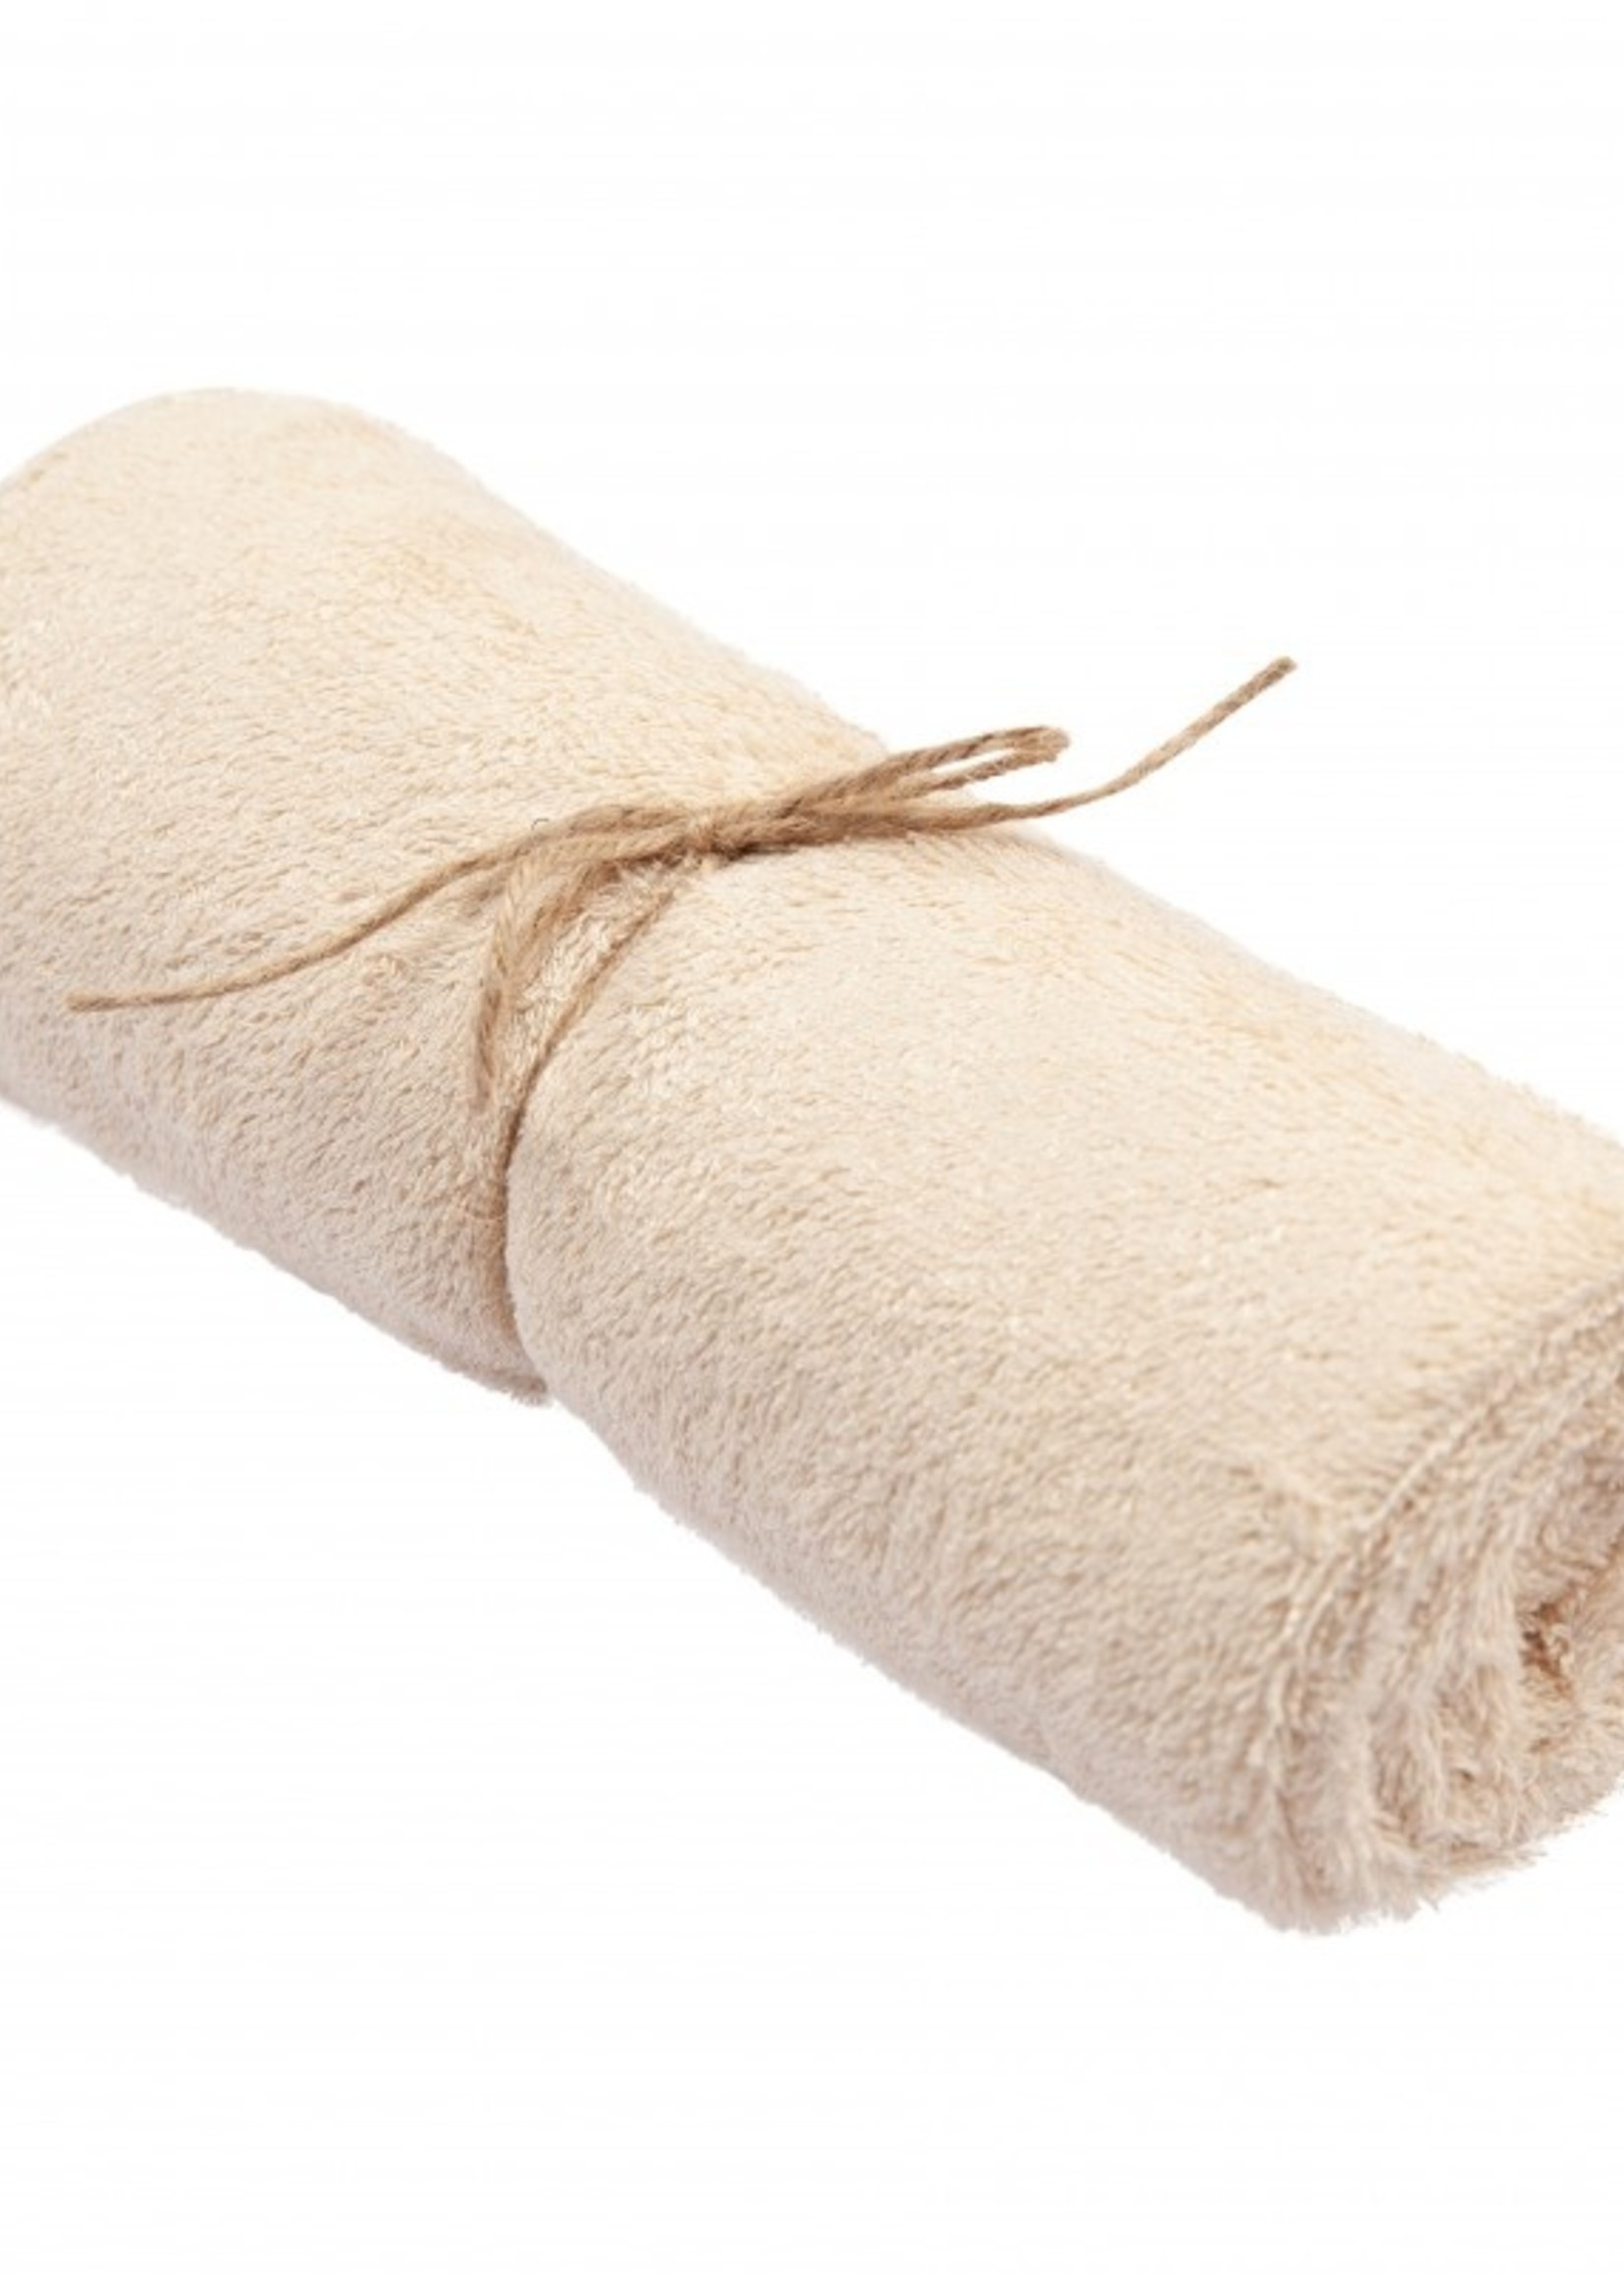 Timboo Towel 74x110 cm Frosted Almond